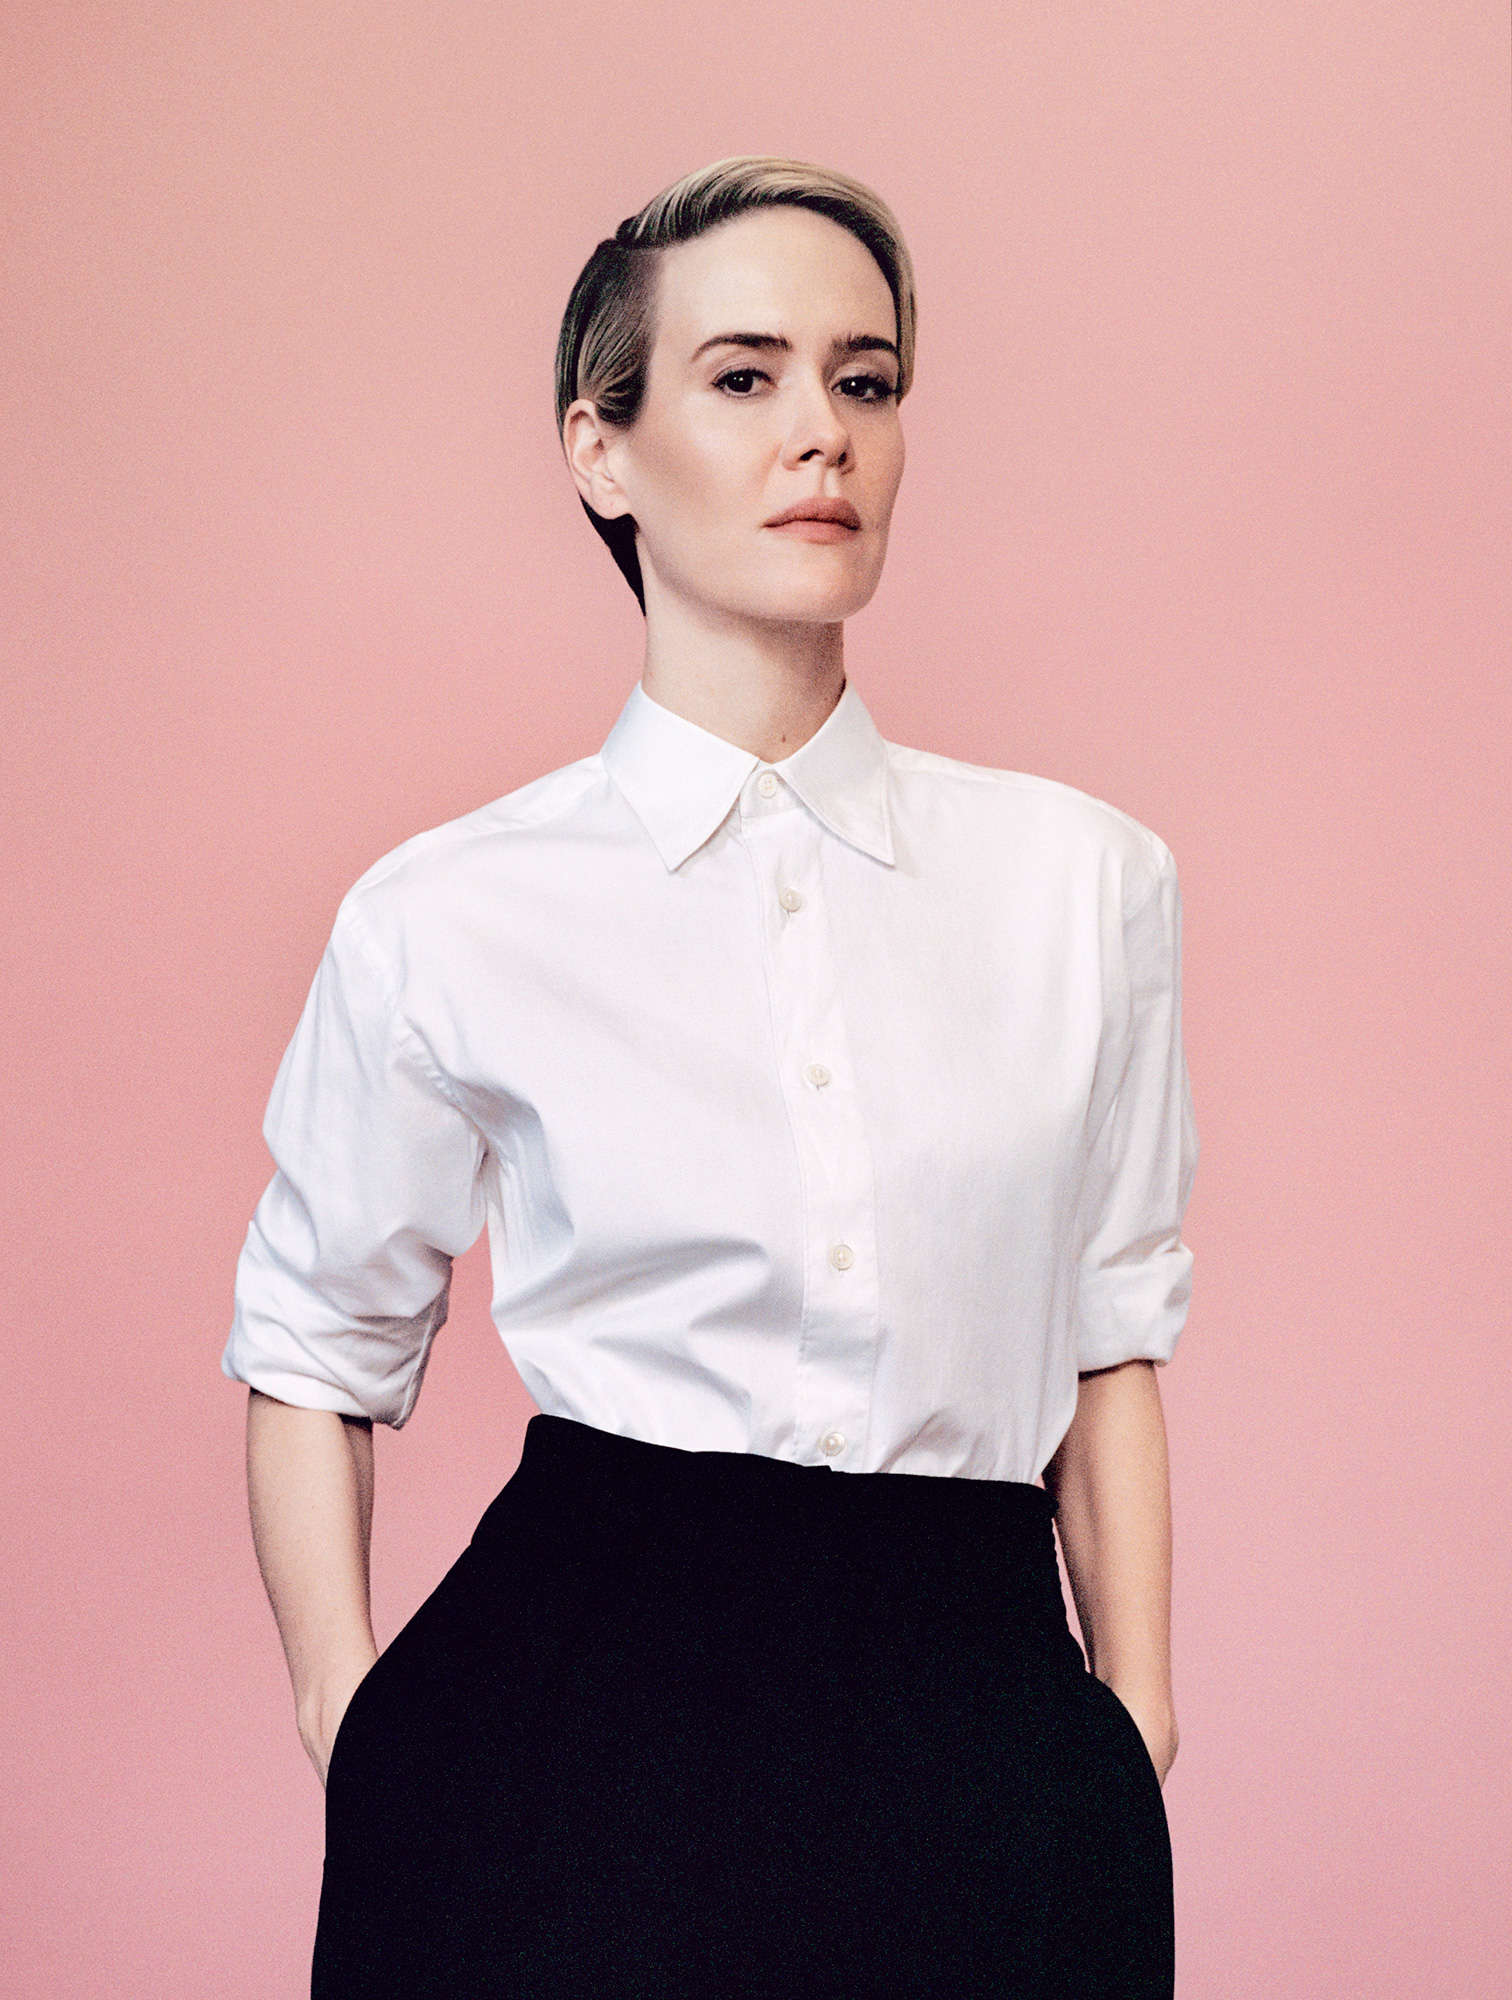 Actor Sarah Paulson photographed in New York City on Nov. 6, 2016.From  The Best of Culture 2016.  Dec. 19, 2016 issue.